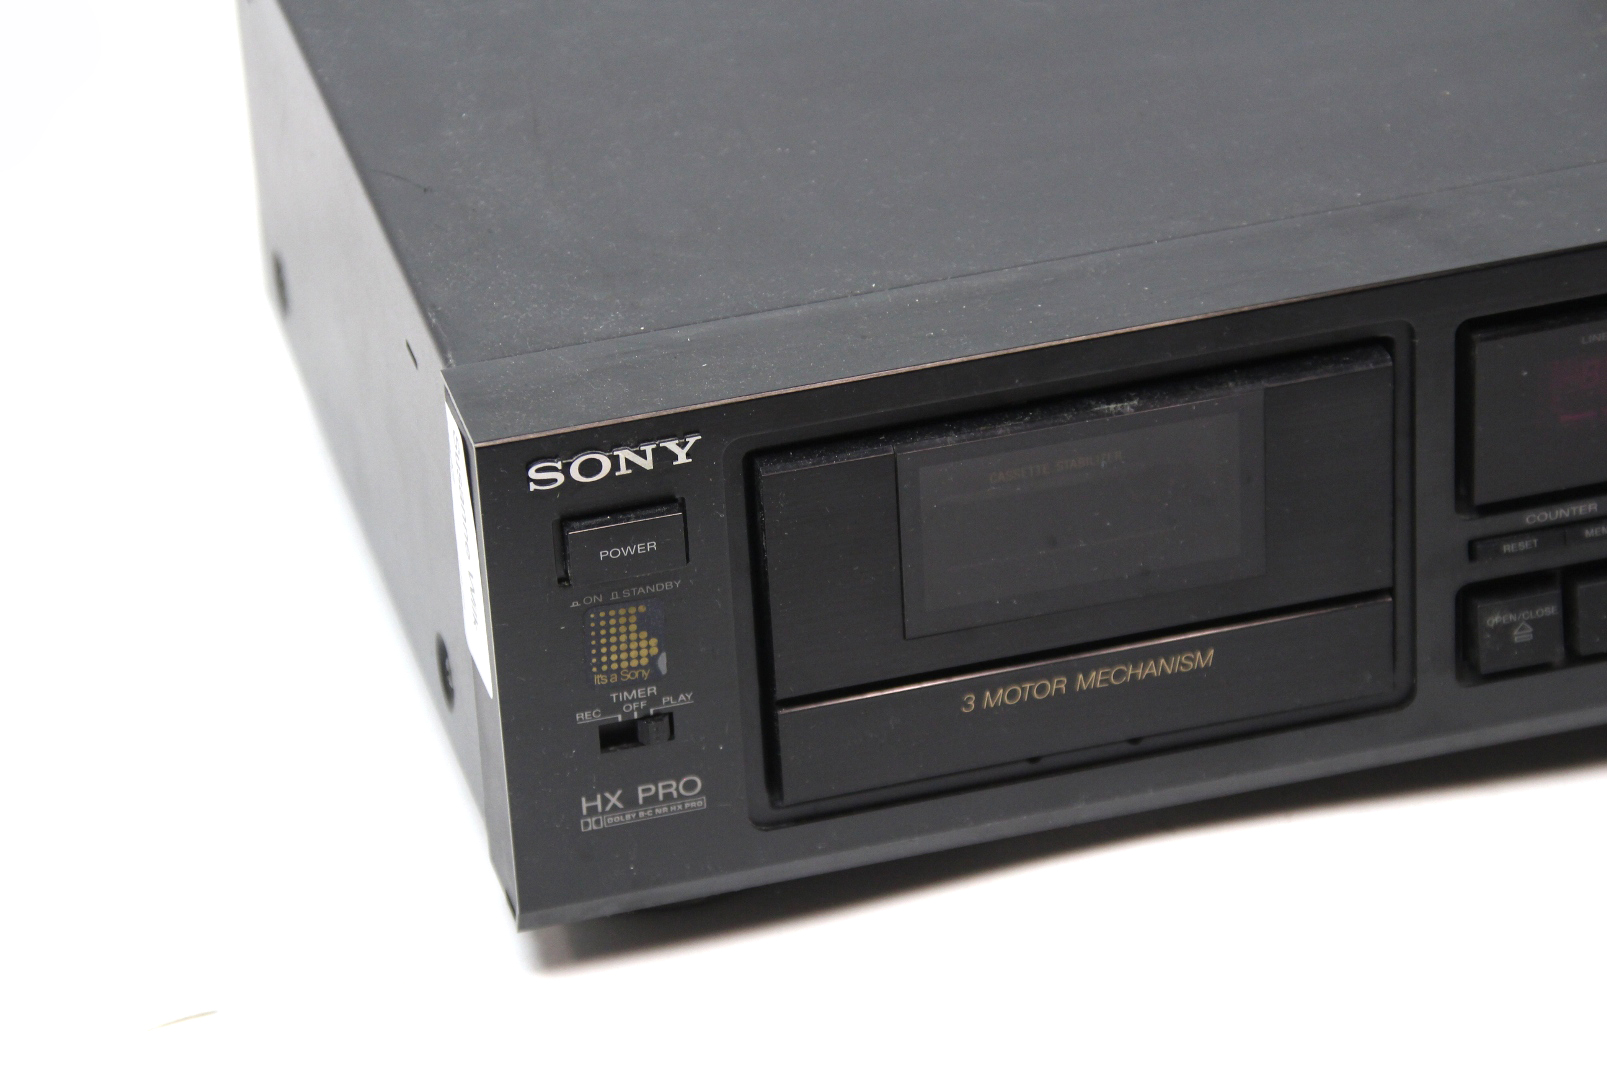 sony tc k520 kassettendeck dolby hx pro mpx kassetten deck tapedeck komponente ebay. Black Bedroom Furniture Sets. Home Design Ideas